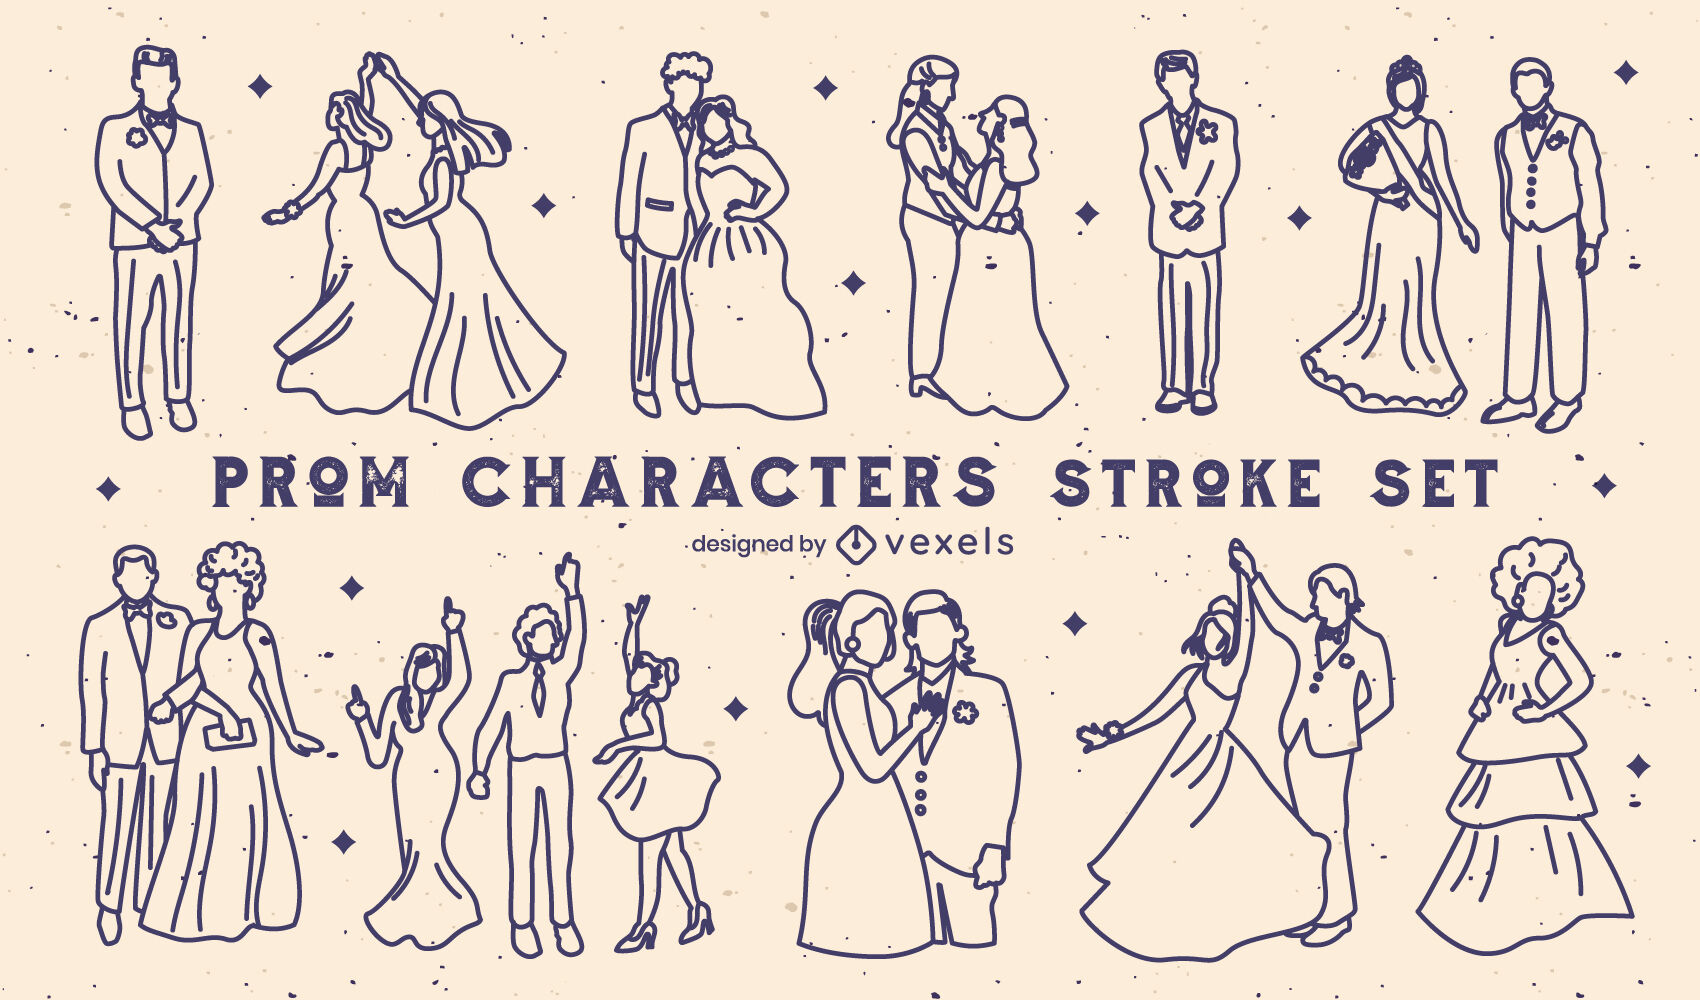 Prom formal party characters stroke set